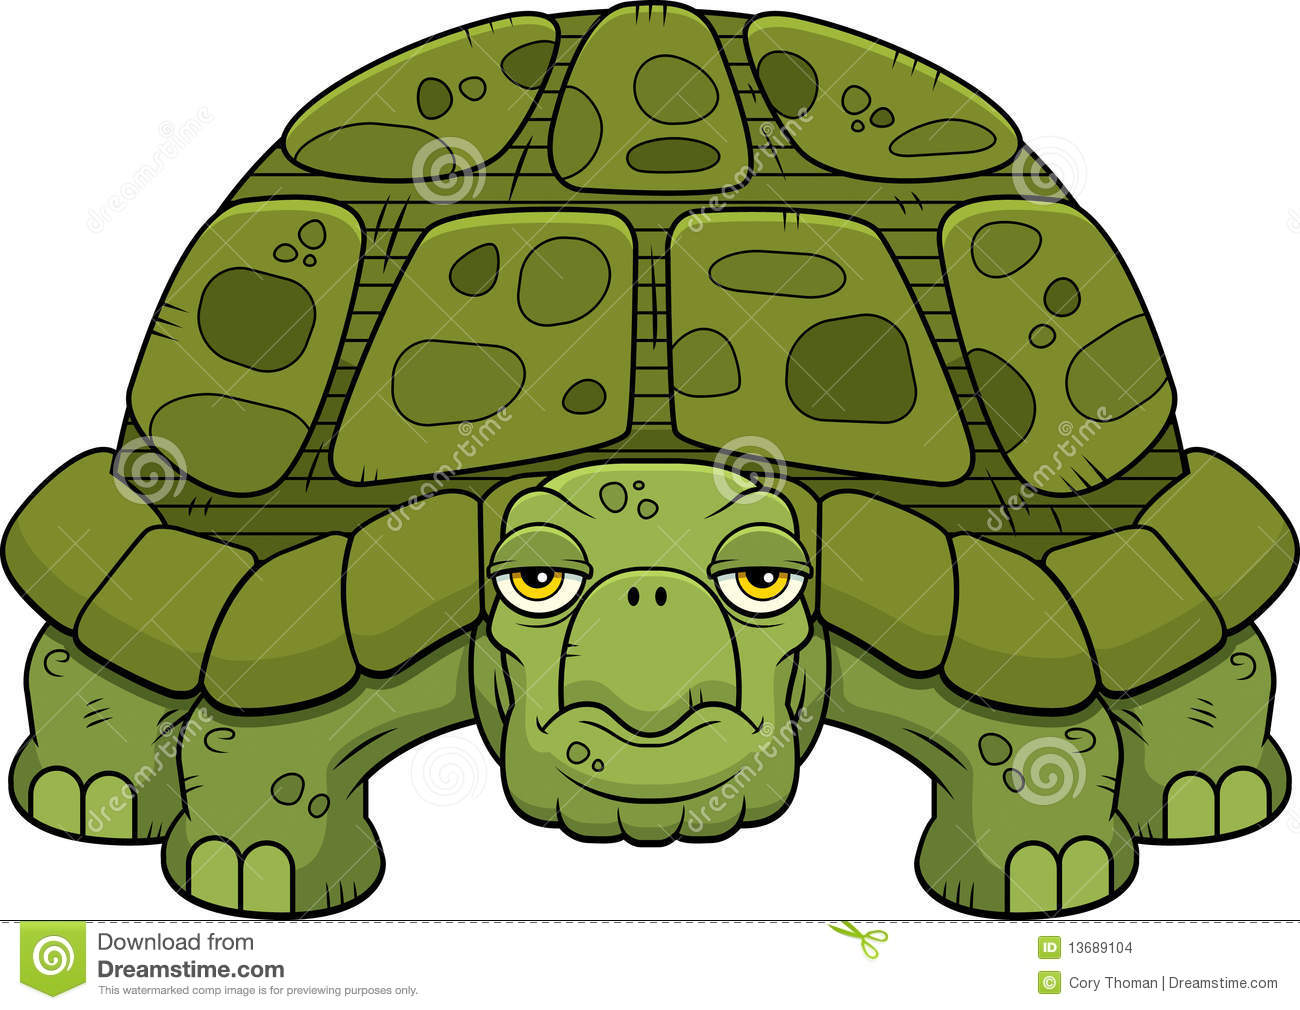 Tortue de dessin anim illustration de vecteur illustration du vert 13689104 - Dessins tortue ...